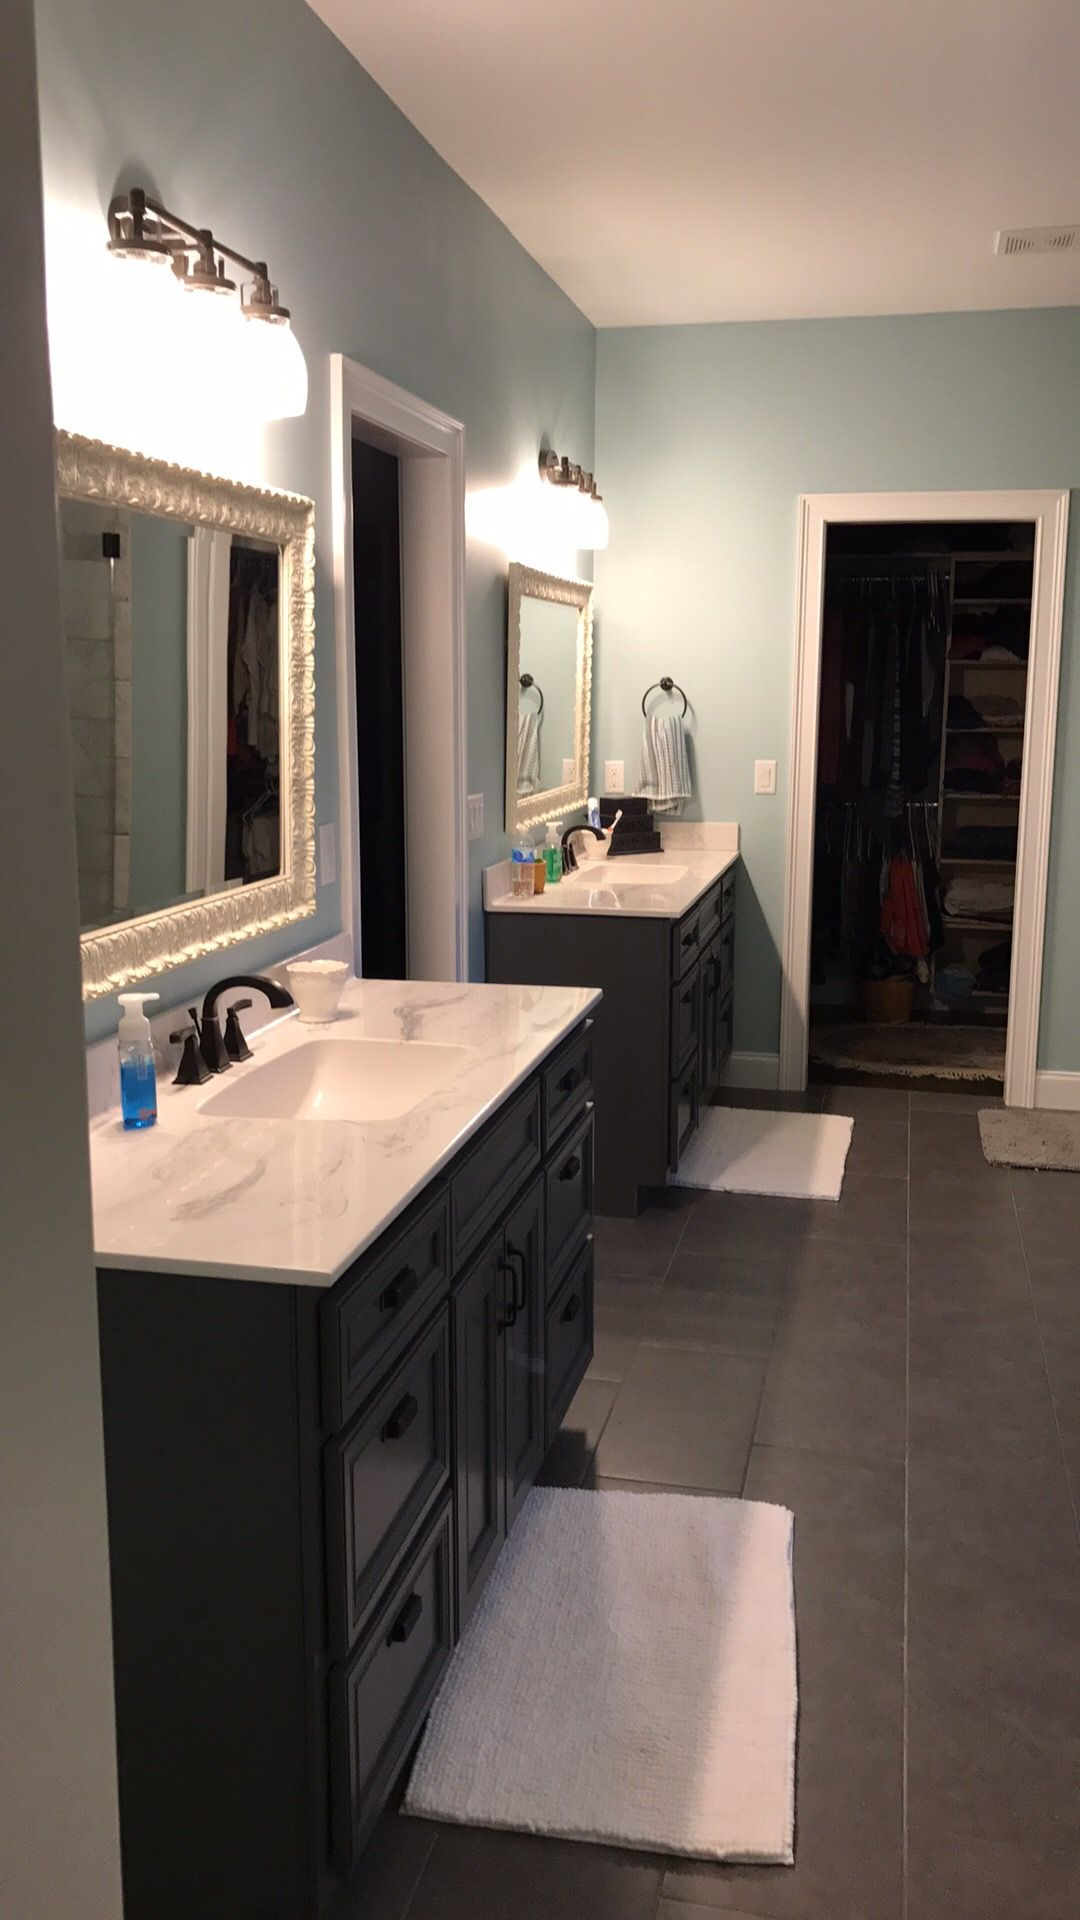 cabinets are sherwin williams peppercorn wall color is sherwin williams watery our house. Black Bedroom Furniture Sets. Home Design Ideas